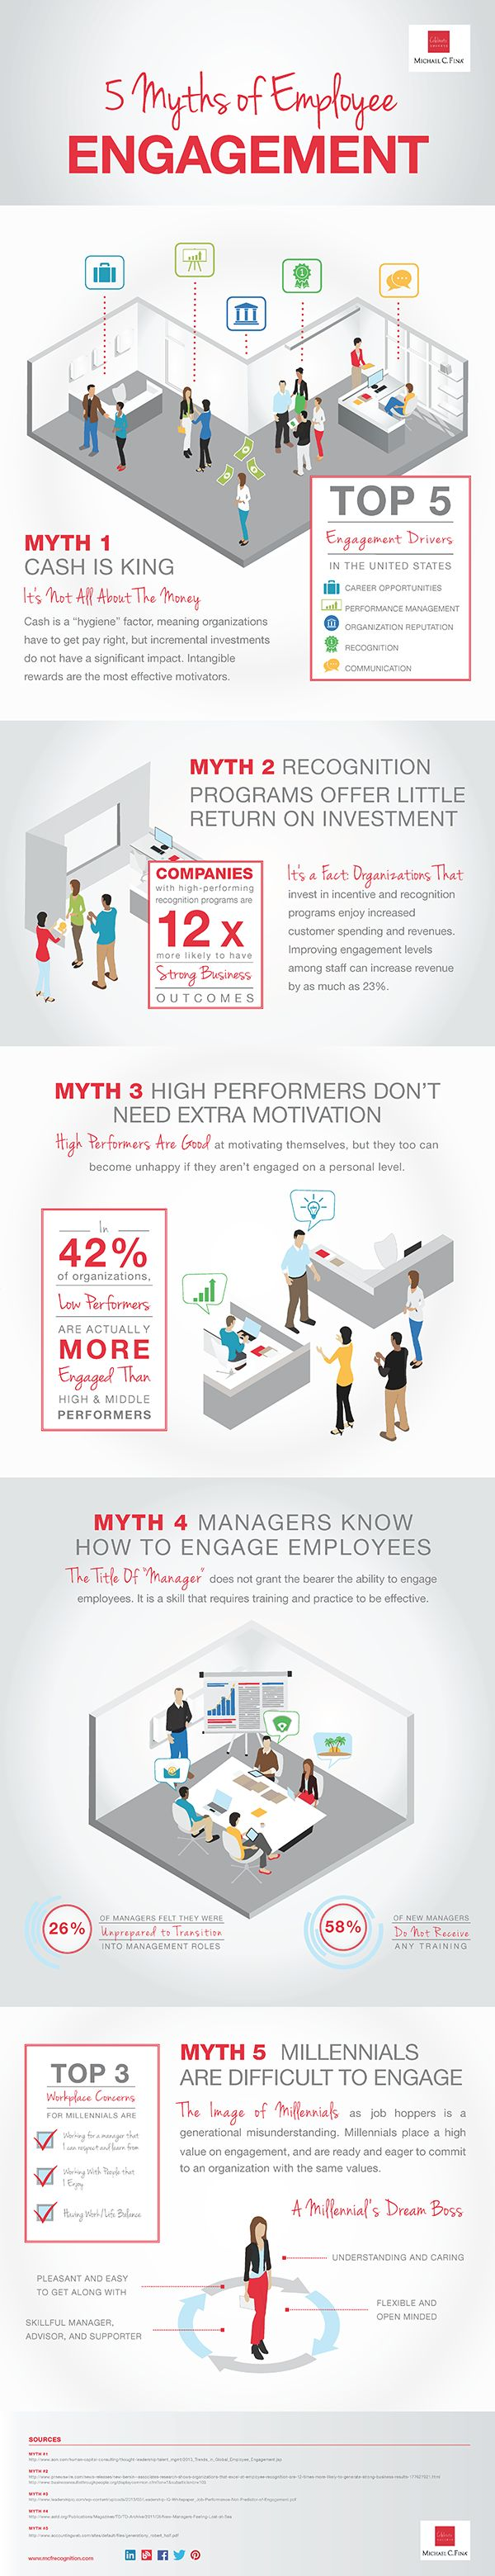 5 Myths of Employee Engagement ROI infographic employment engagement